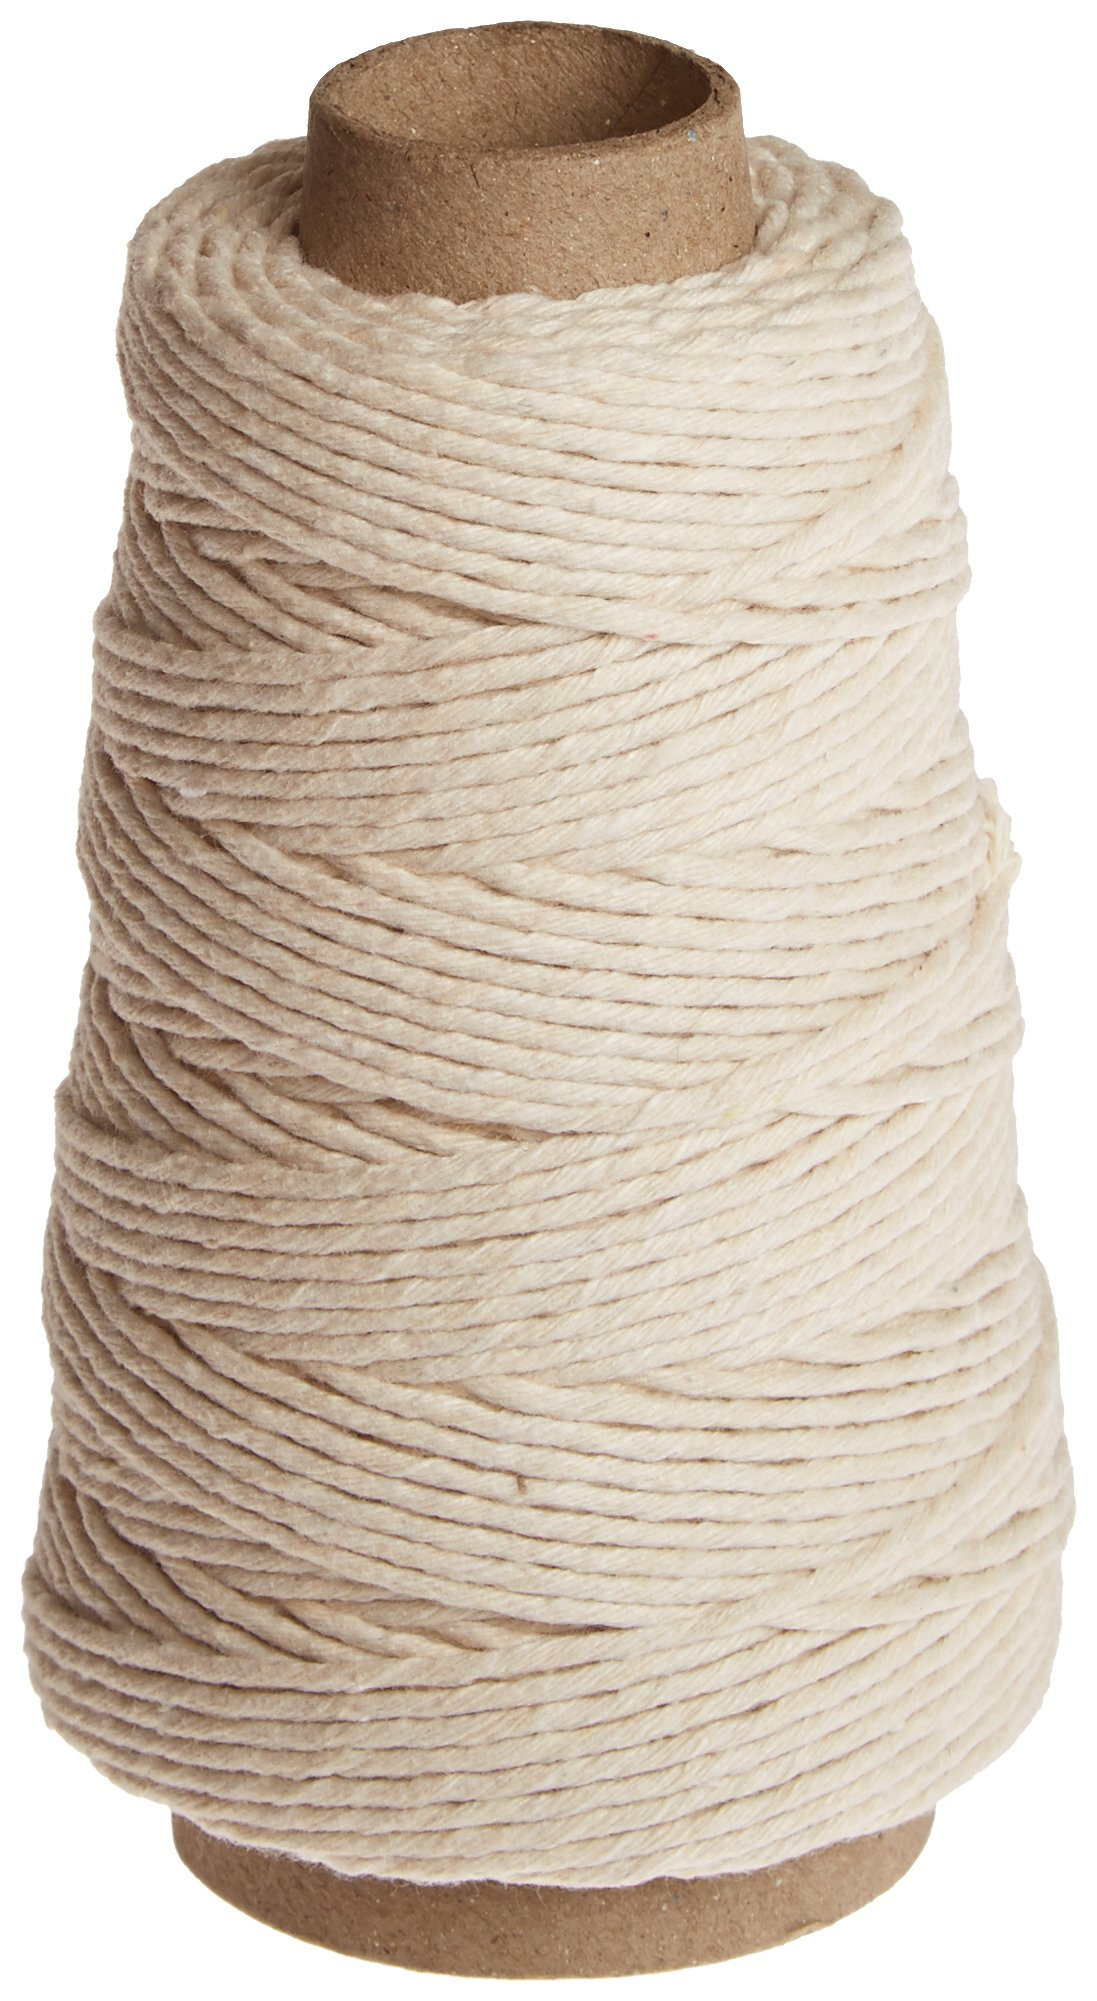 OXO Good Grips 100-Percent Natural Cotton Twine, 300-Feet by OXO